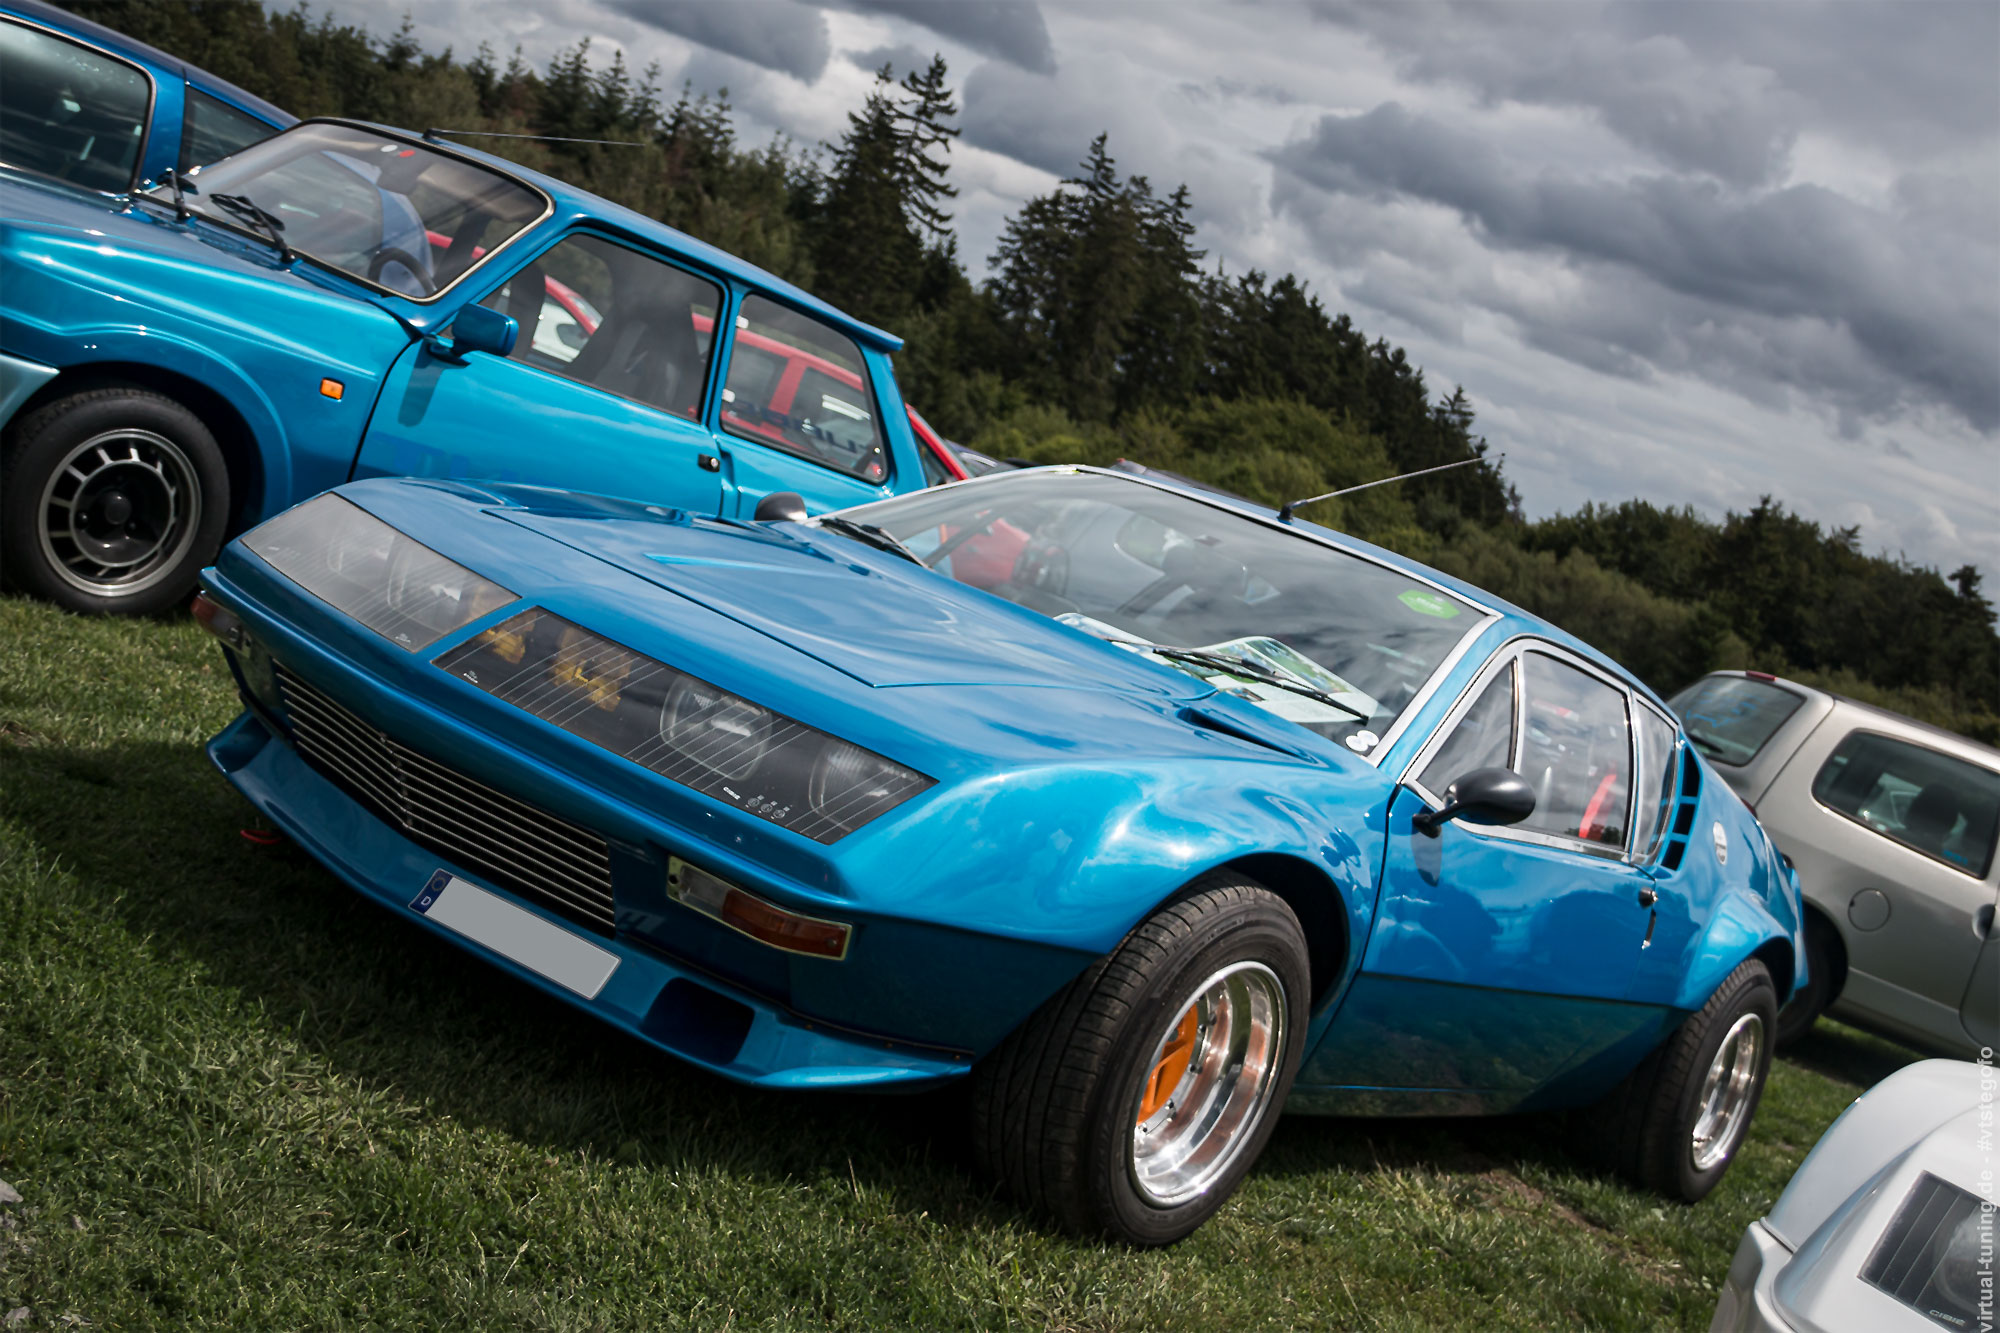 Alpine A310 - D'ARC Sommerfest 2019 am Nürburgring